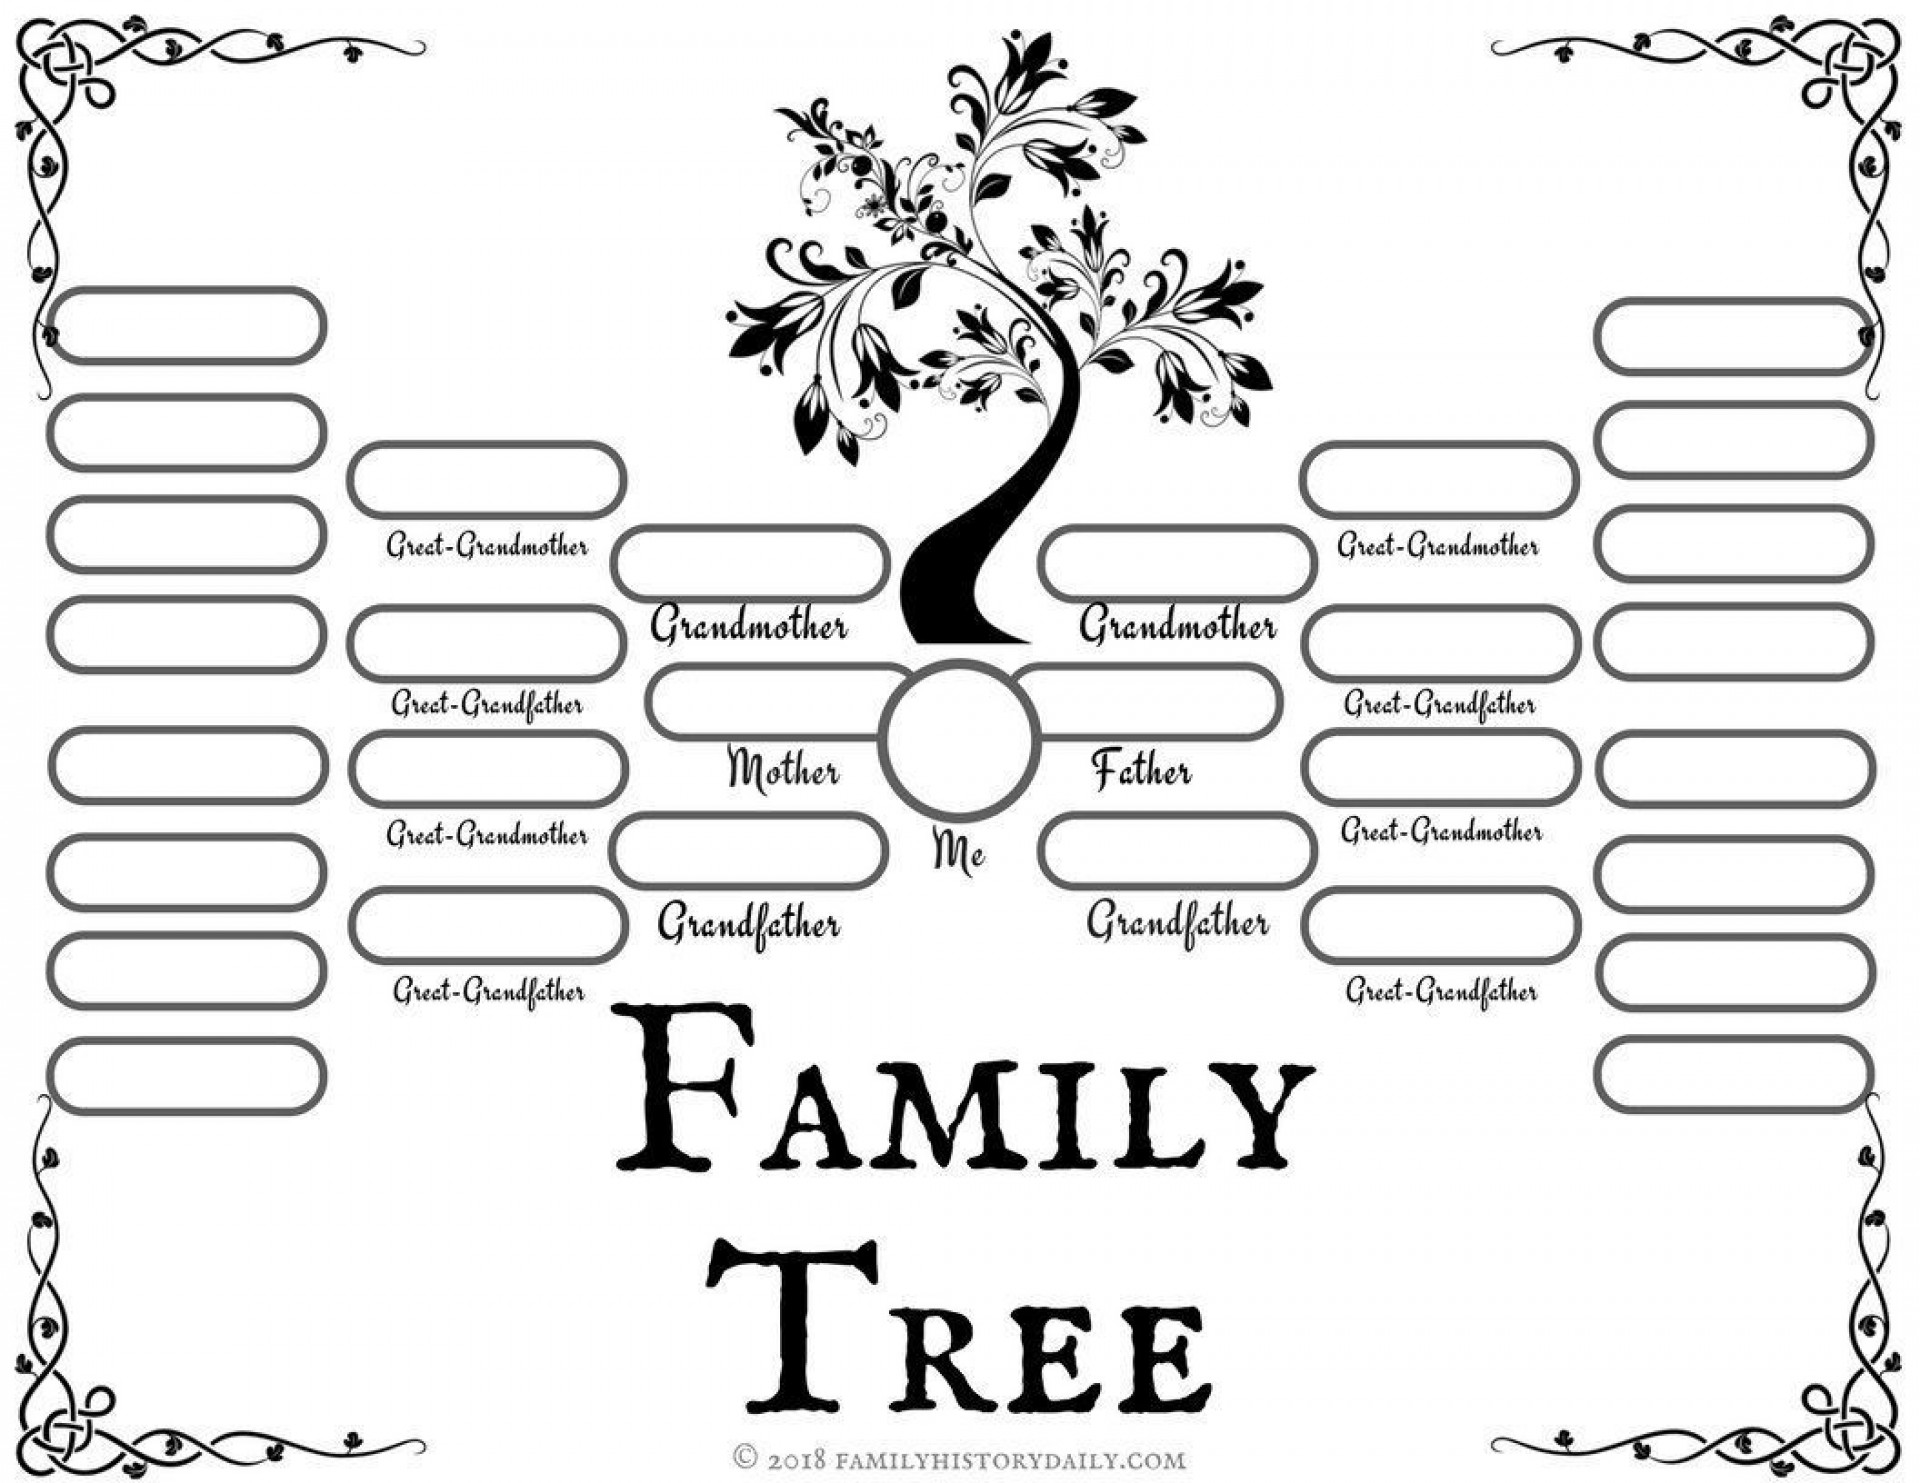 004 Marvelou Family Tree Book Template Word High Resolution  History1920